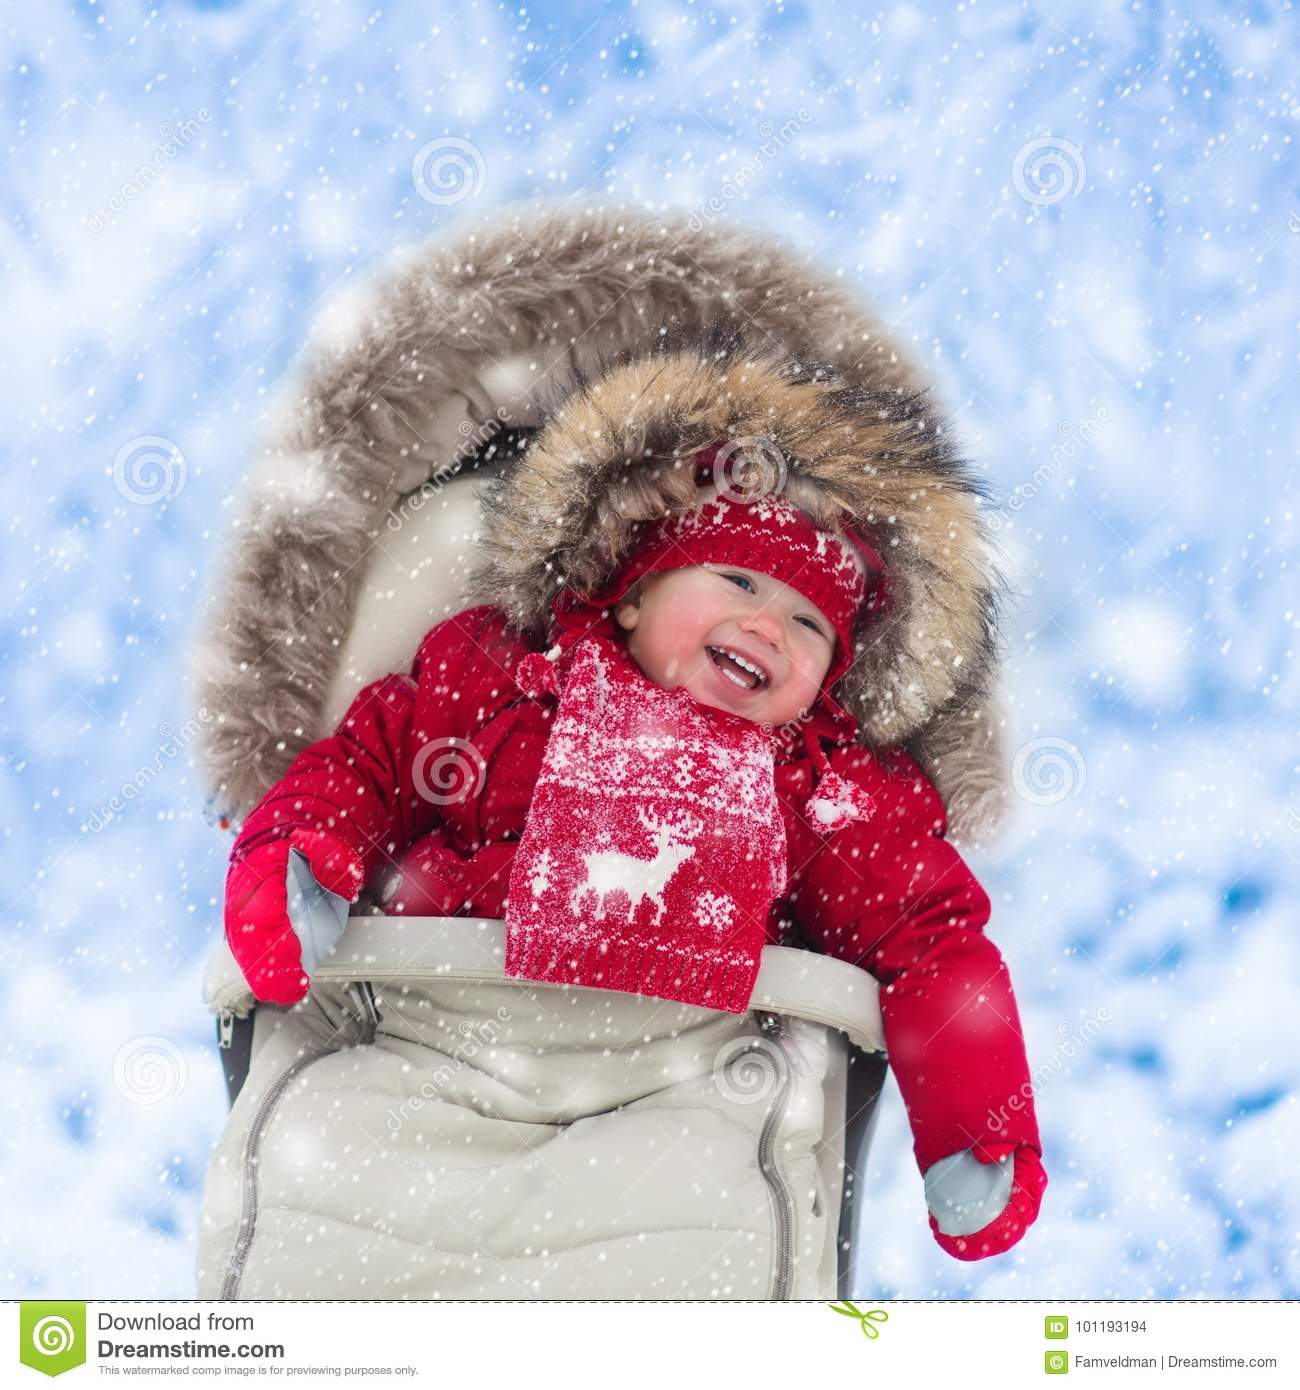 ed9e6af05 Baby In Stroller In Winter Park With Snow Stock Photo - Image of ...